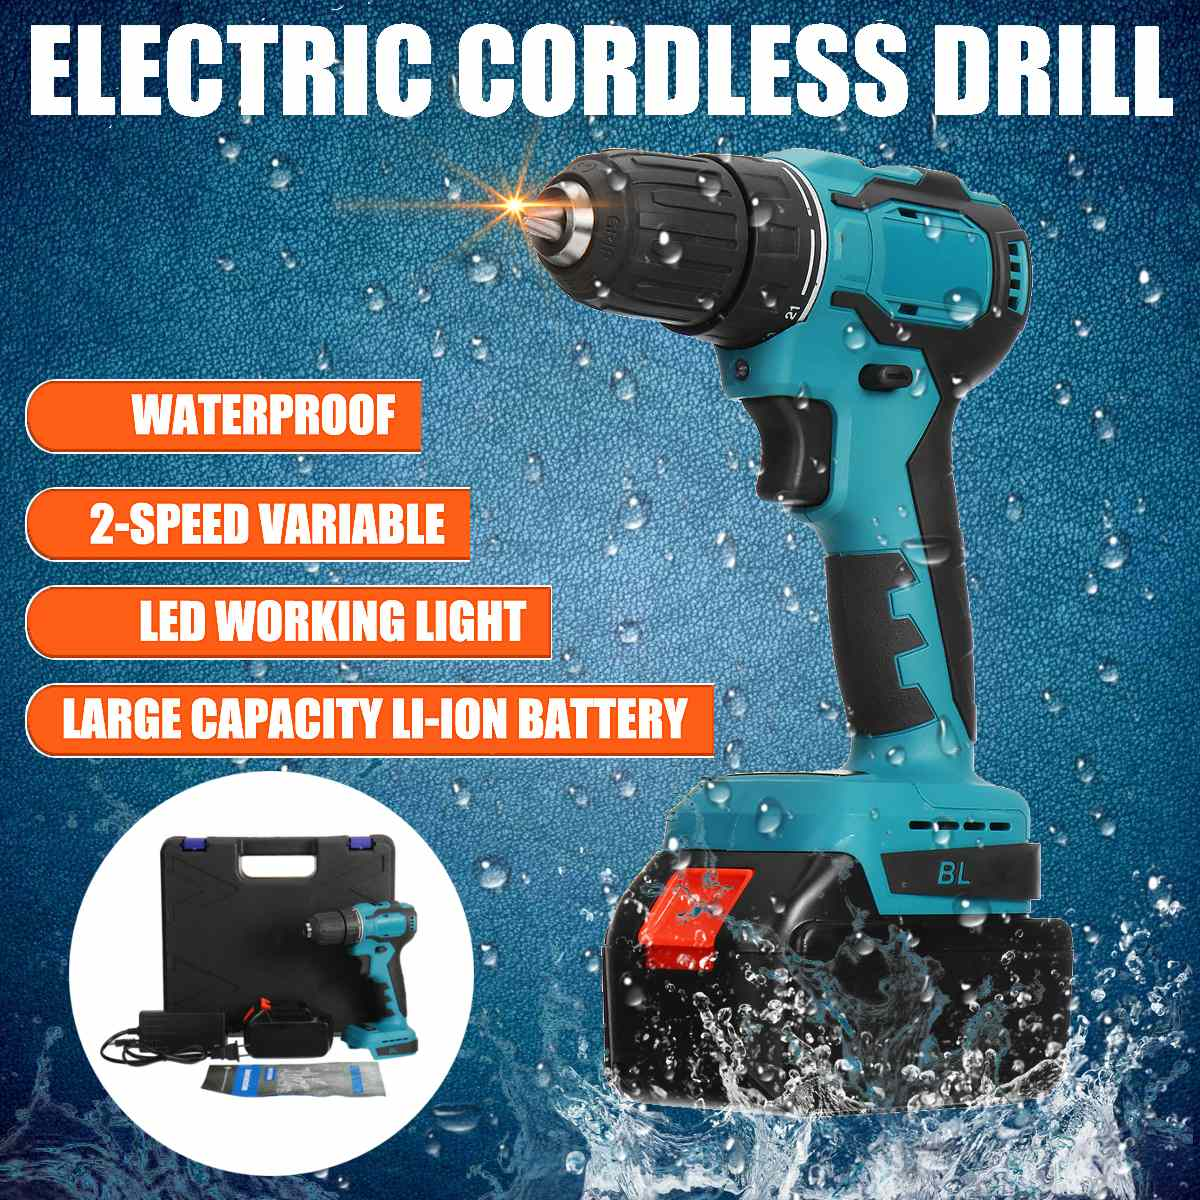 48V Cordless Electric Impact Drill 150Nm Torque Driver Kit Screwdriver Brushless LED Power Tools 6500mAh Battery